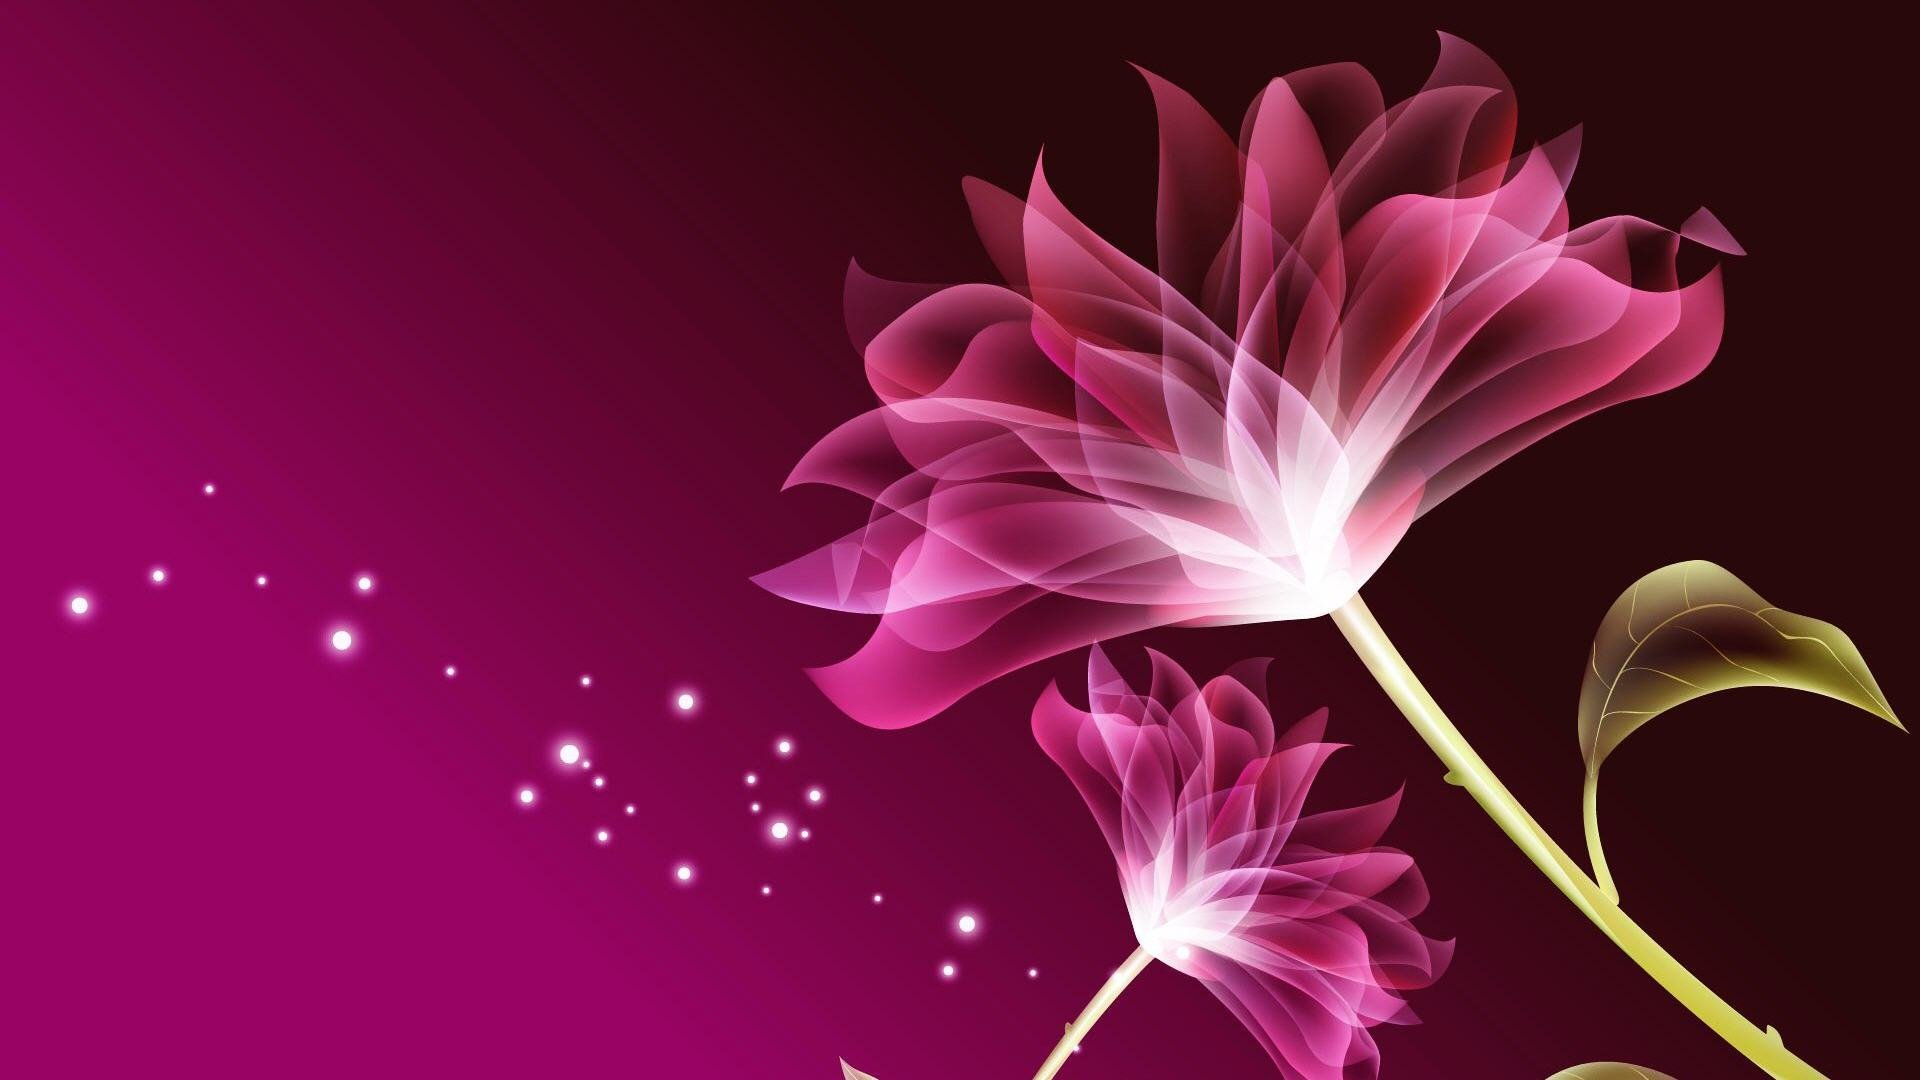 Beautiful Flower Nature Wallpapers